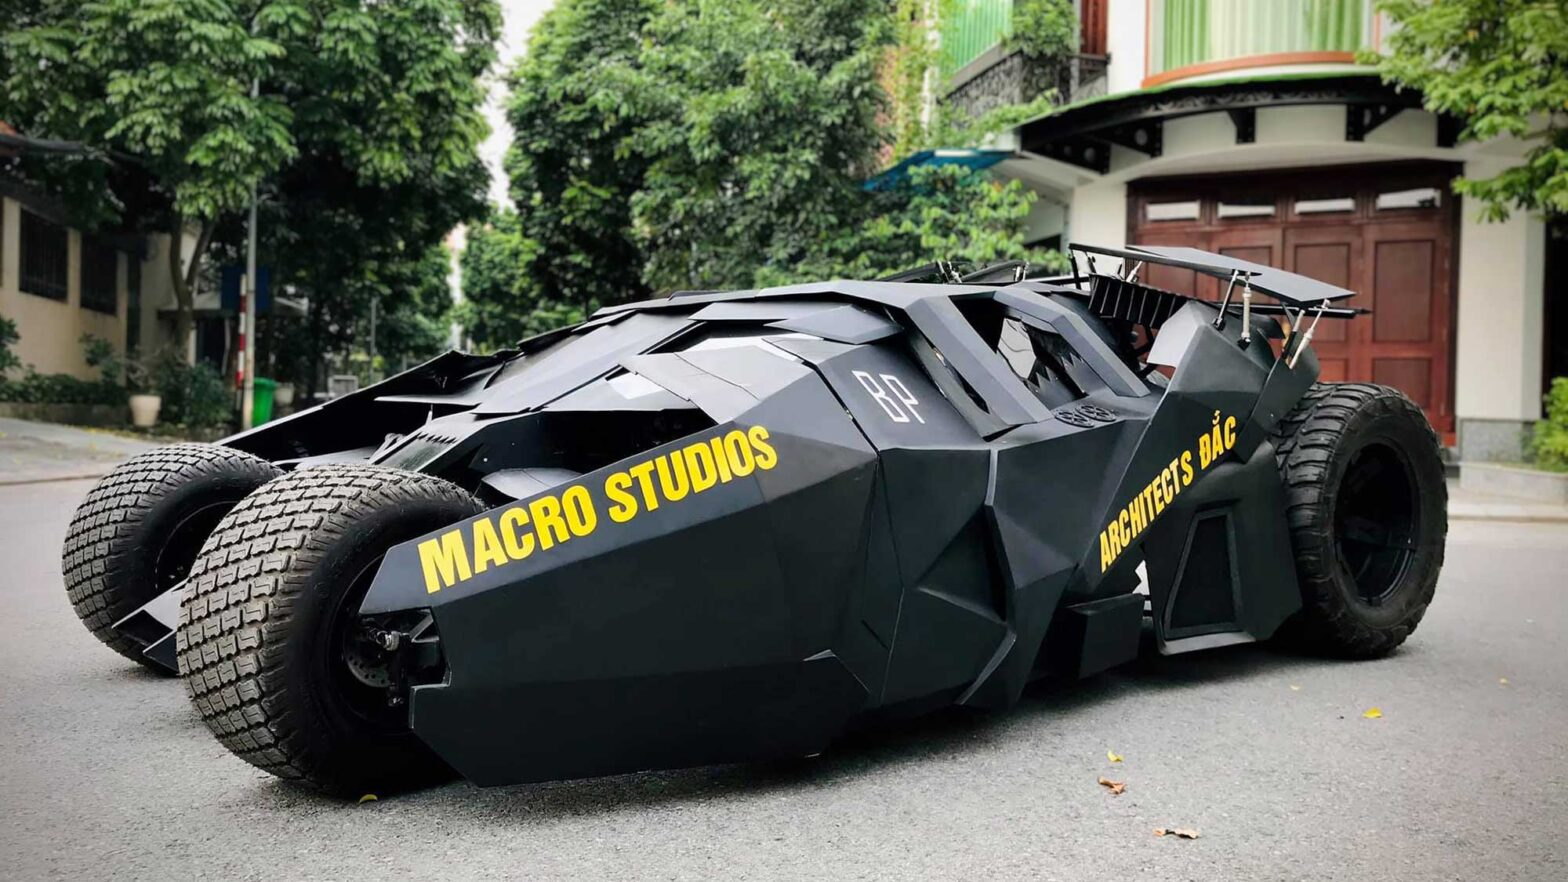 Vietnam College Student His Own Tumbler Batmobile